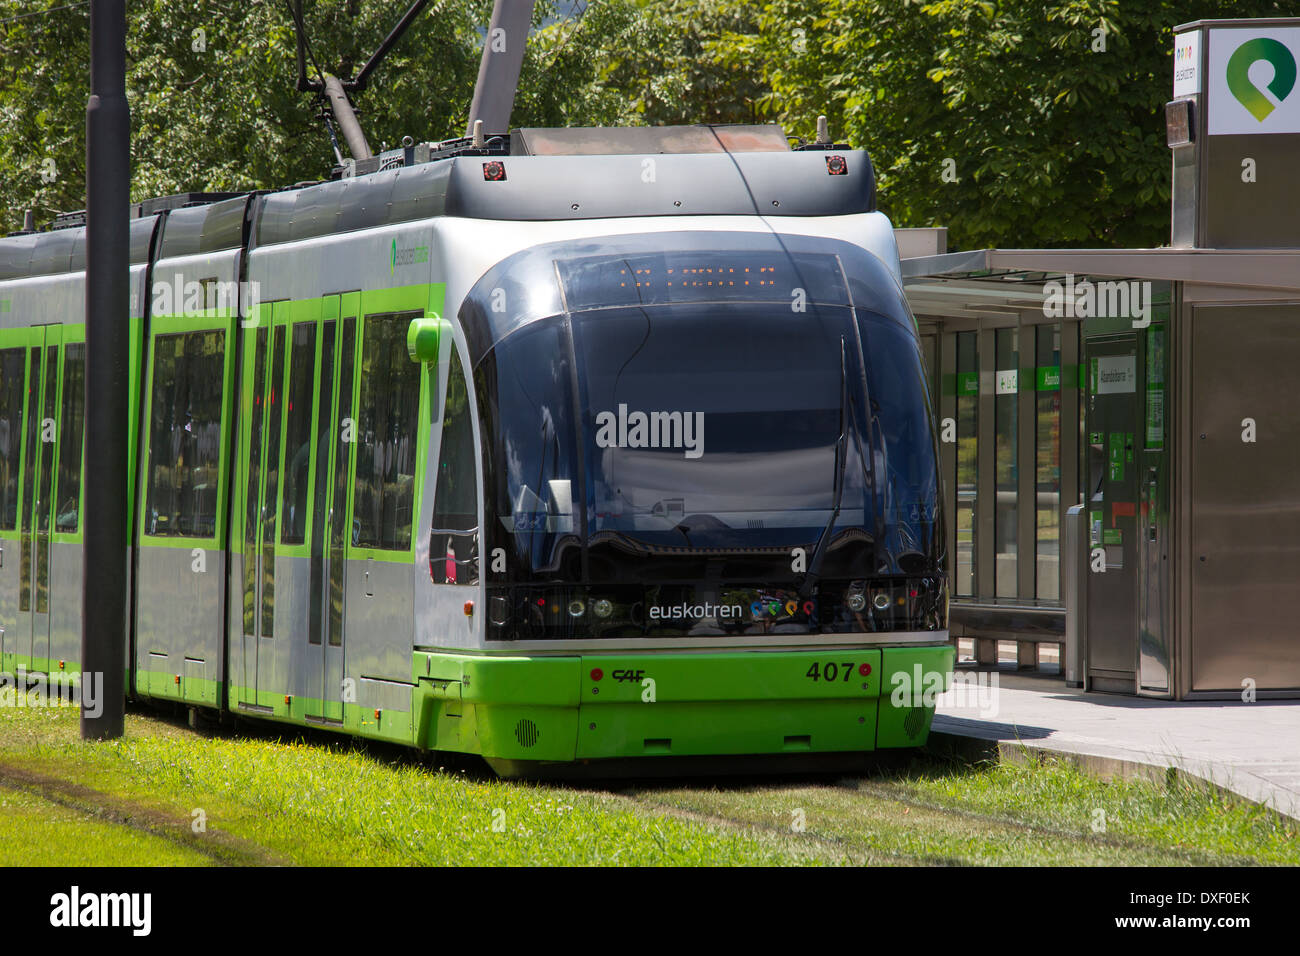 The Euskotren tram system in the city of Bilbao in northern Spain. - Stock Image